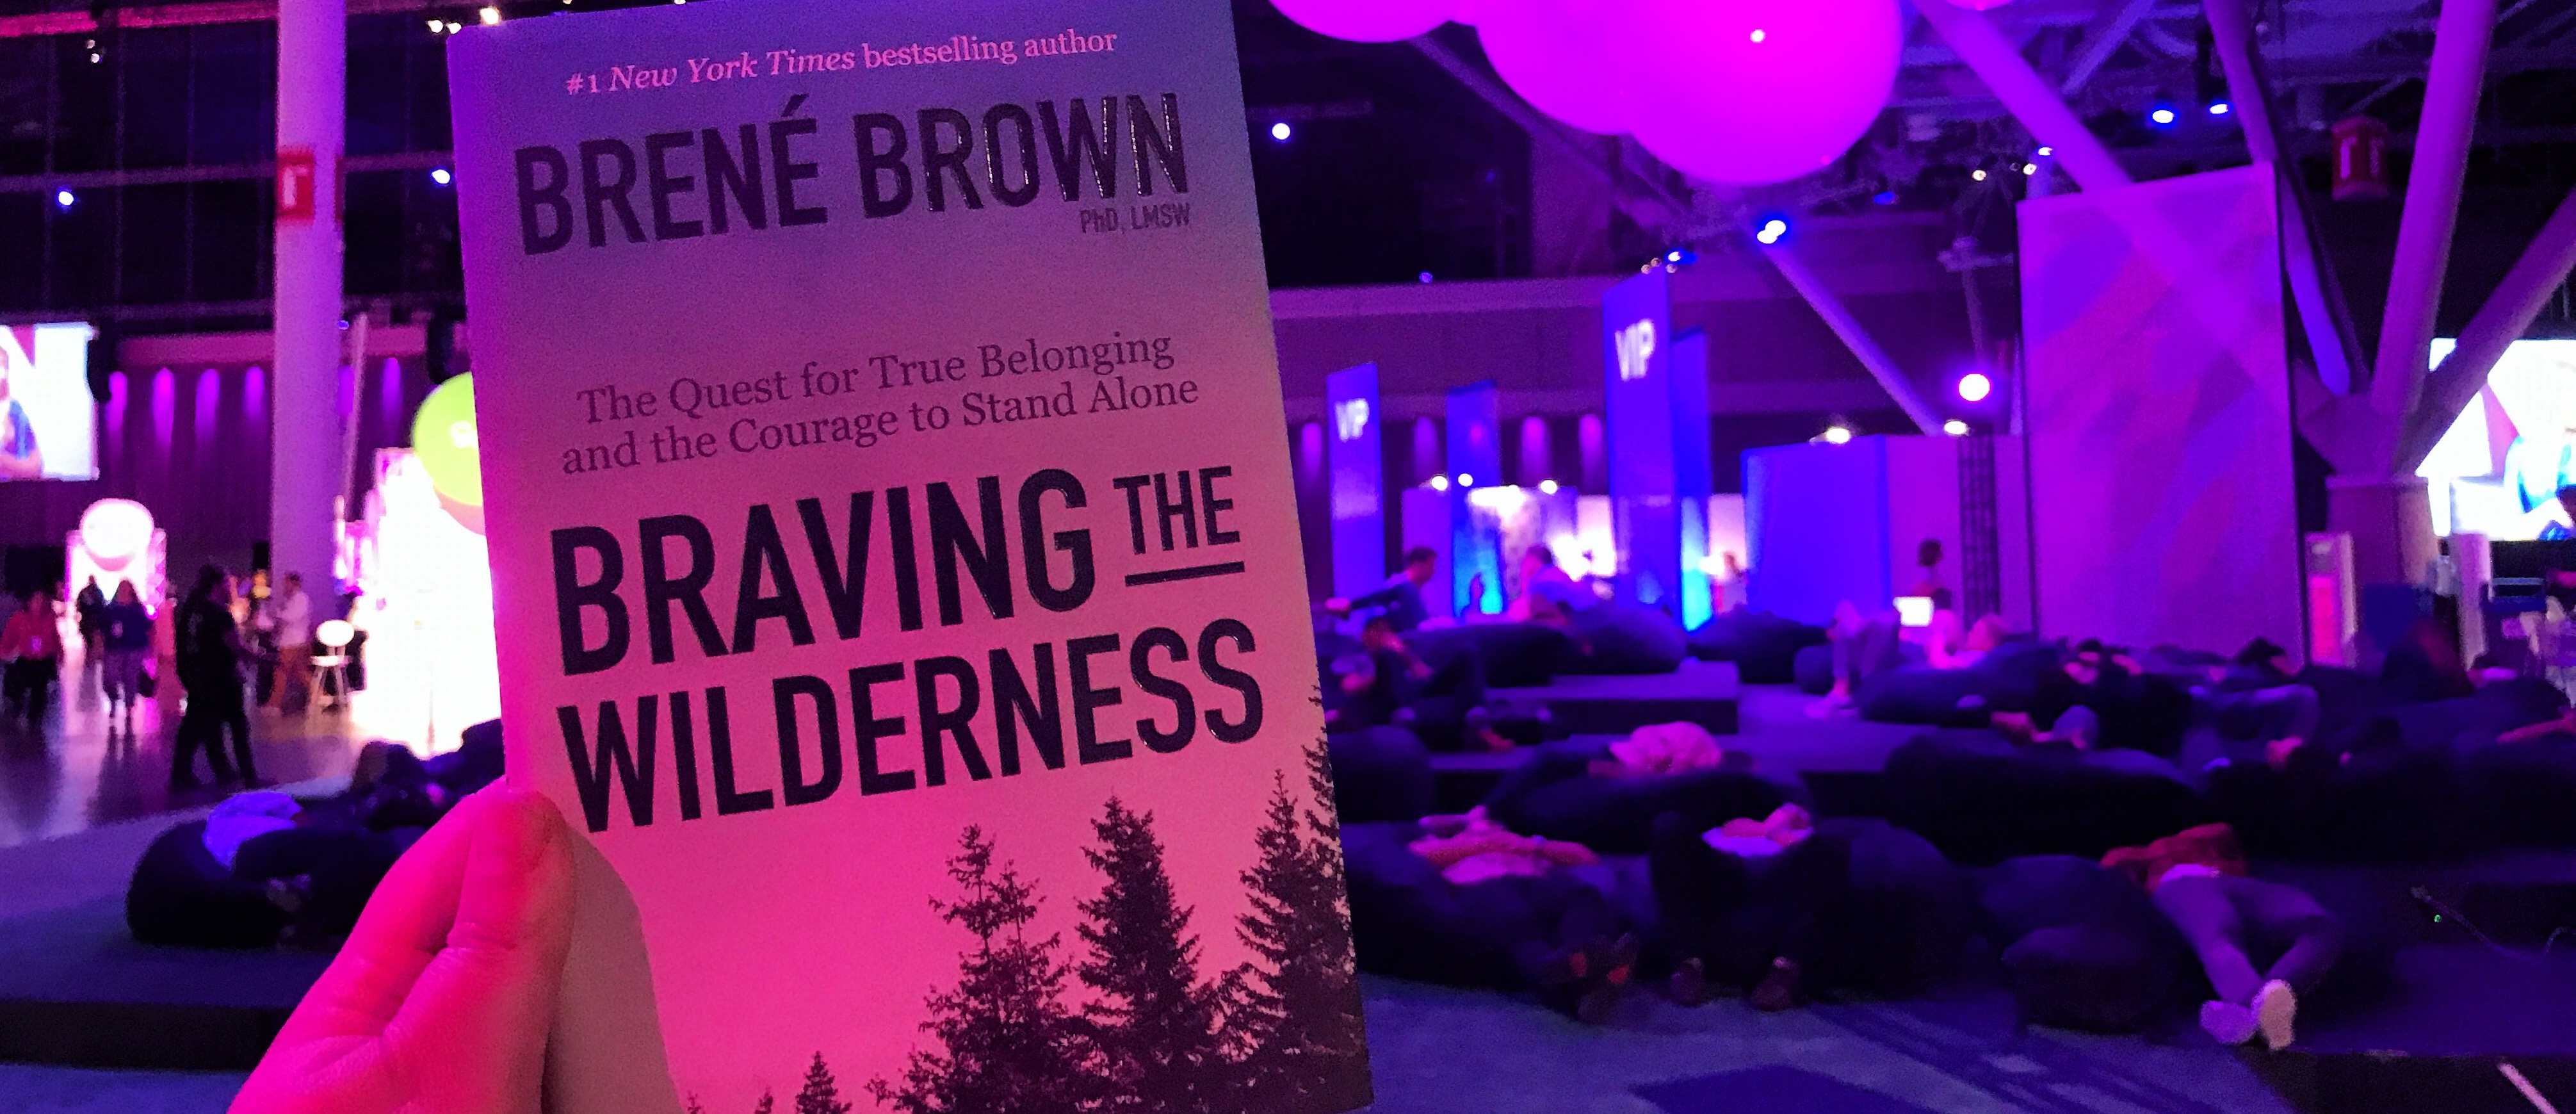 CB Book Club: Braving the Wilderness by Brené Brown (Creator's Block, Ep. 54)